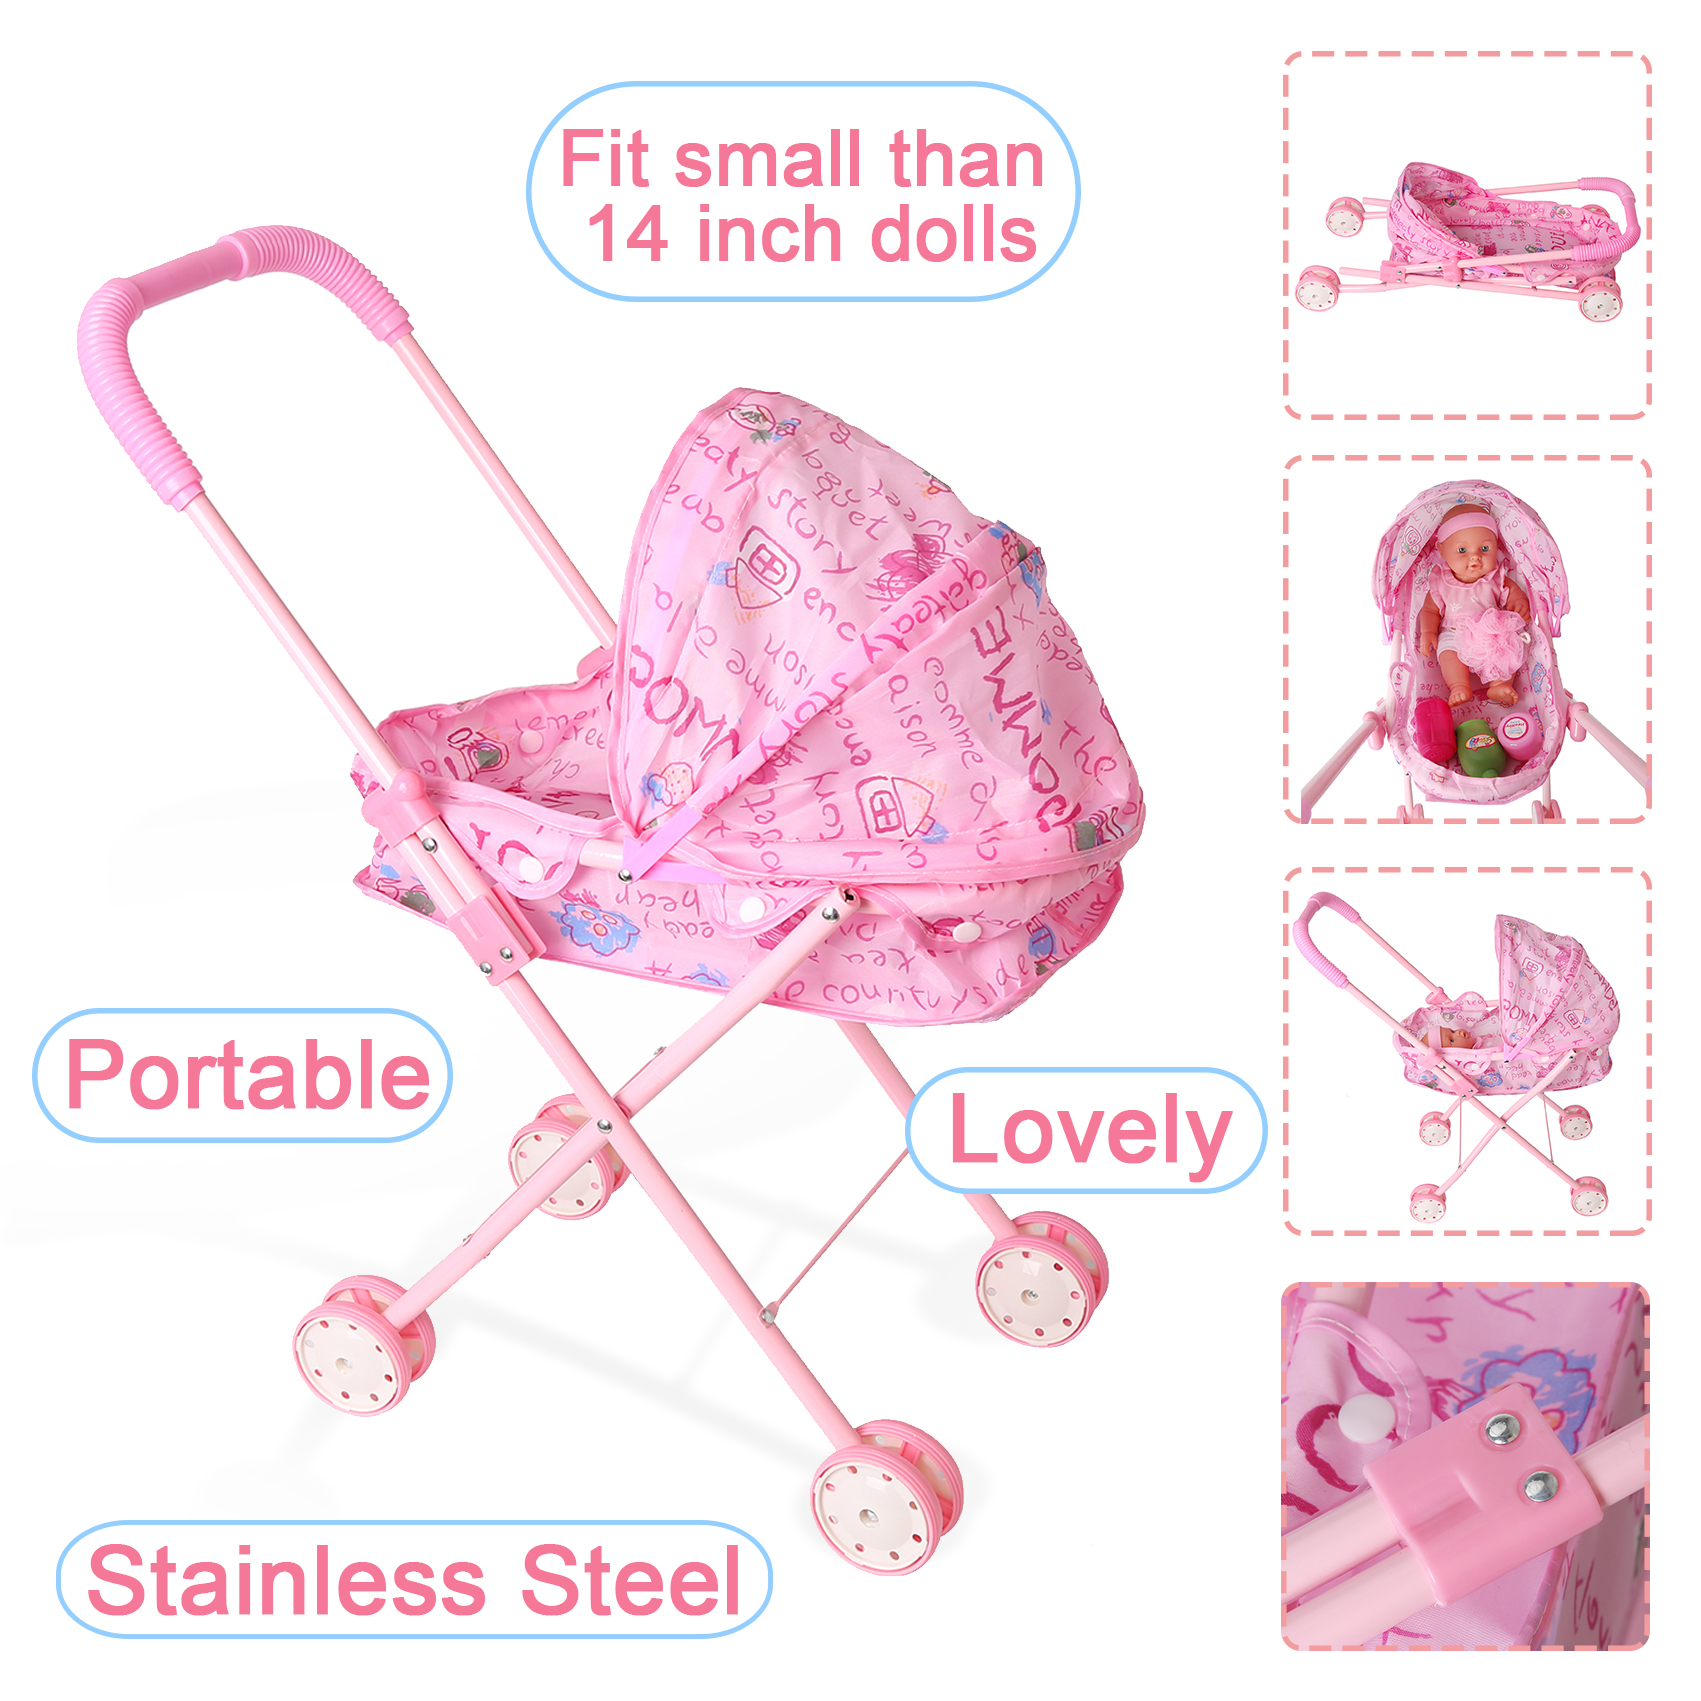 Doll Stroller Foldable Stroller Pushchair Safe Baby Dolls Carriages Pretended Play Furniture Toys Fit Small Than 14in For Kids